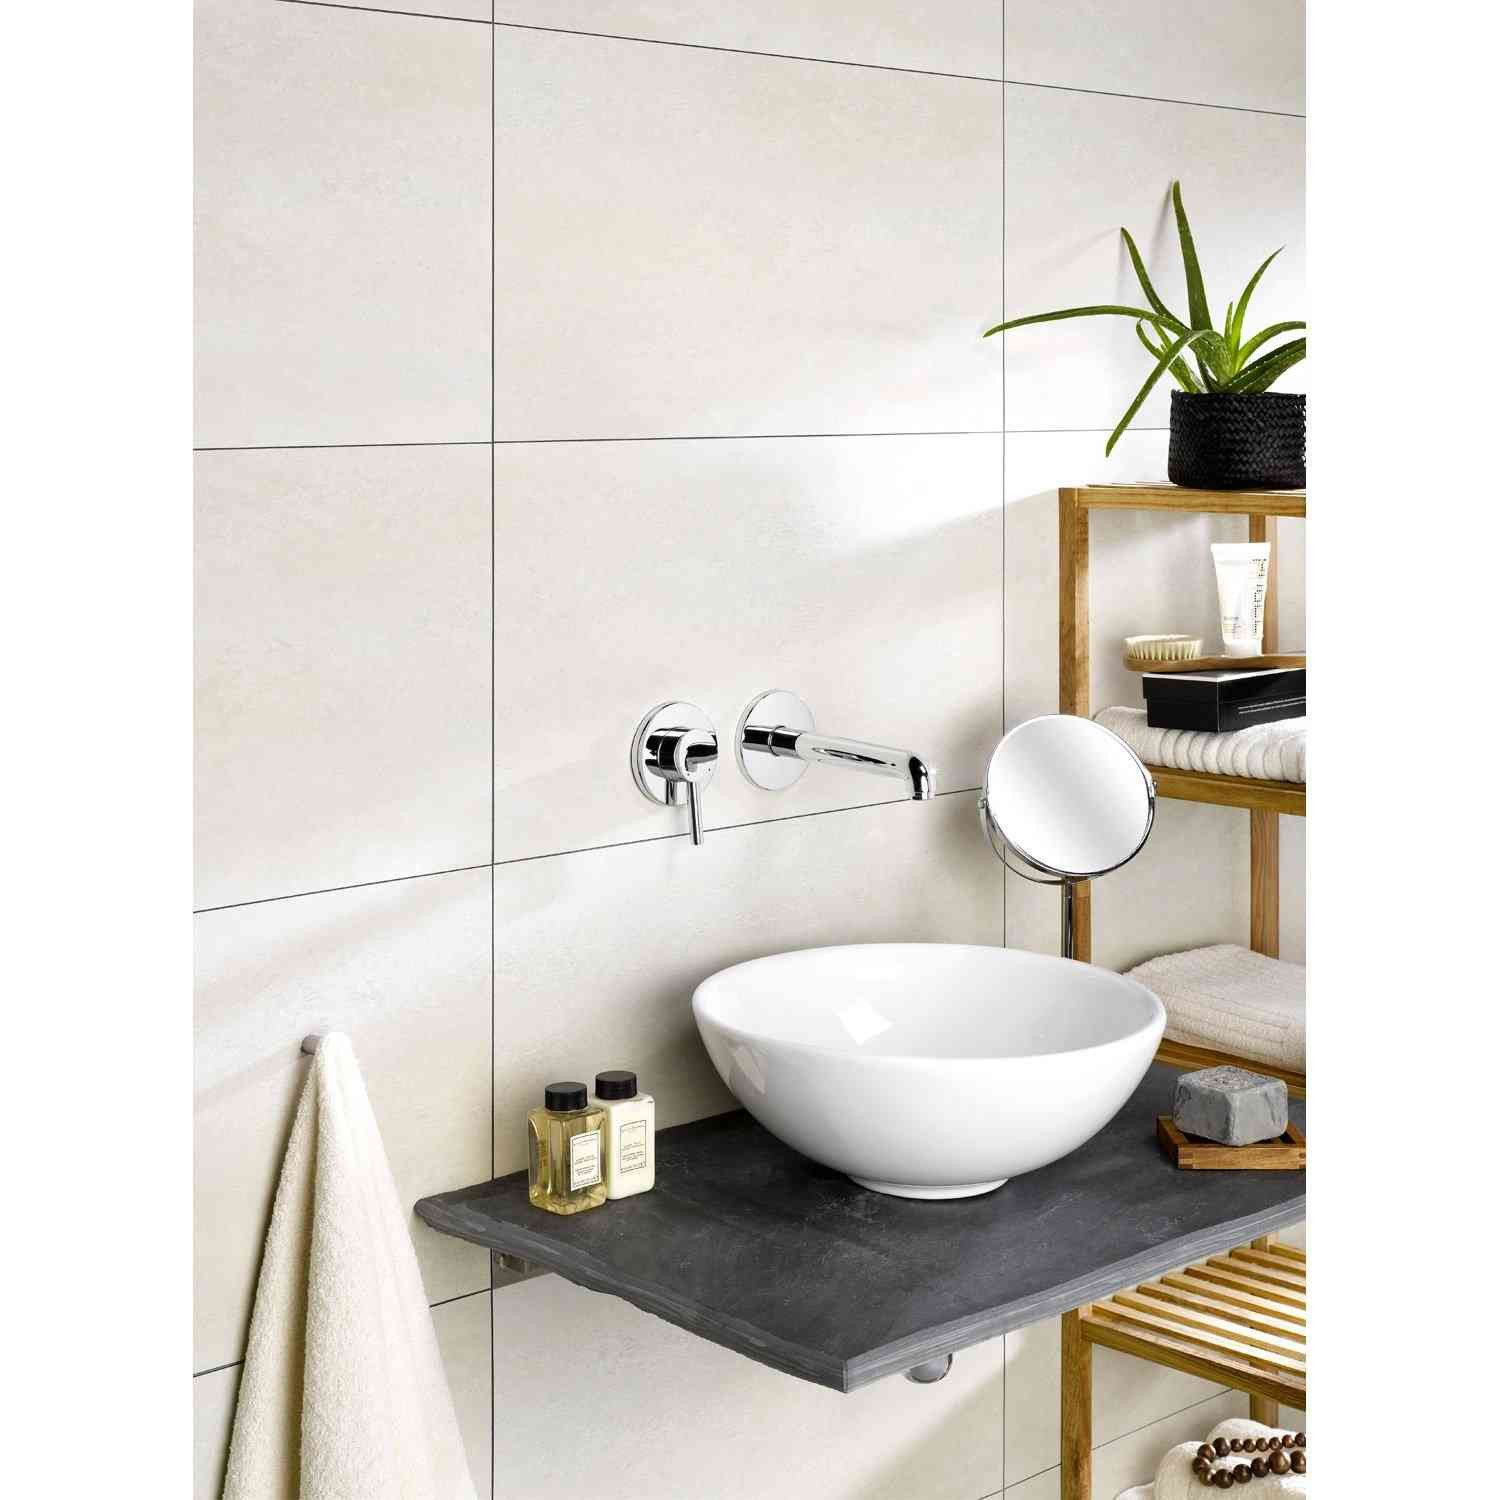 Luxury Lambris Imitation Carrelage Parement Mural Pvc Salle De Bain Renovation Salle De Bain